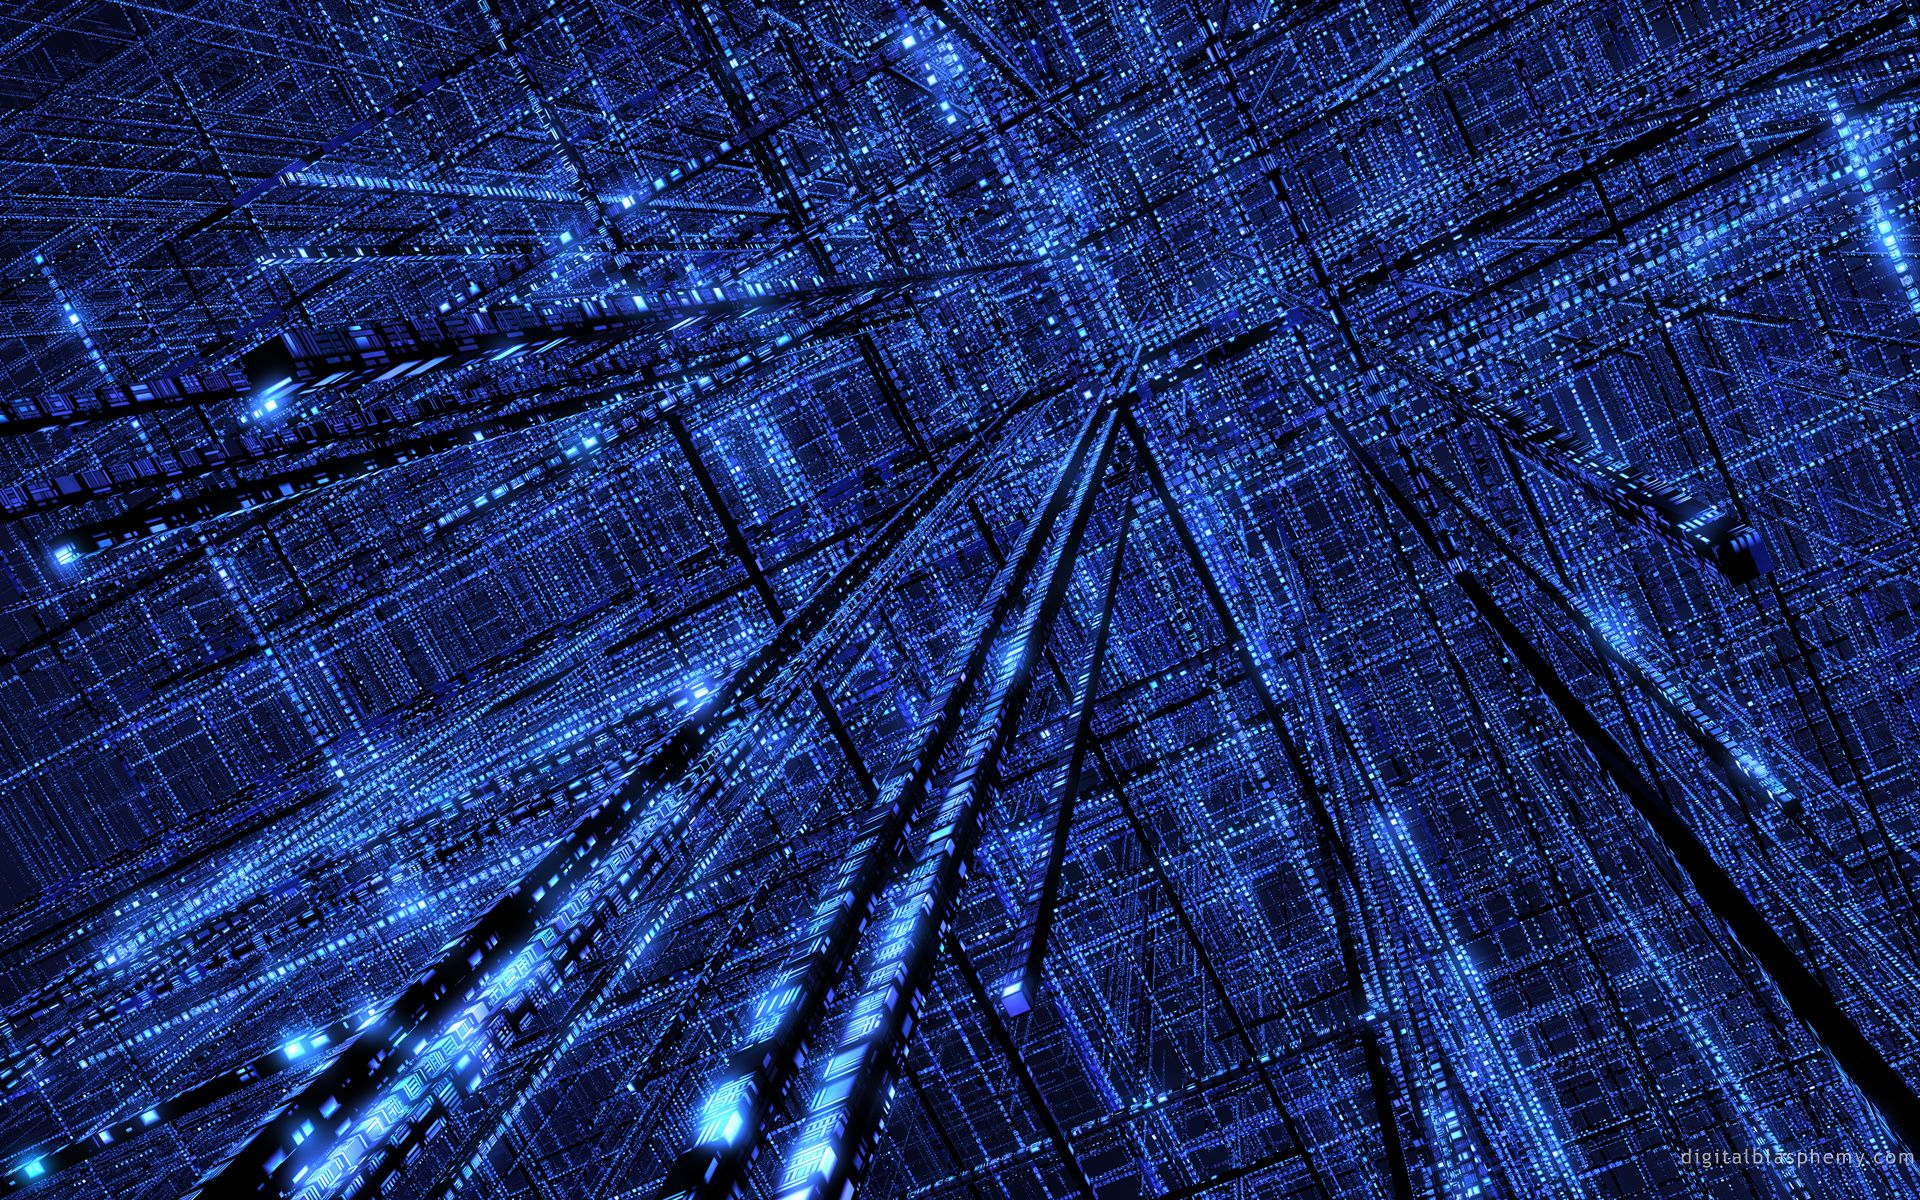 The Grid By Dblasphemy On Deviantart Technology Wallpaper Blue Digital Art Hi Tech Wallpaper